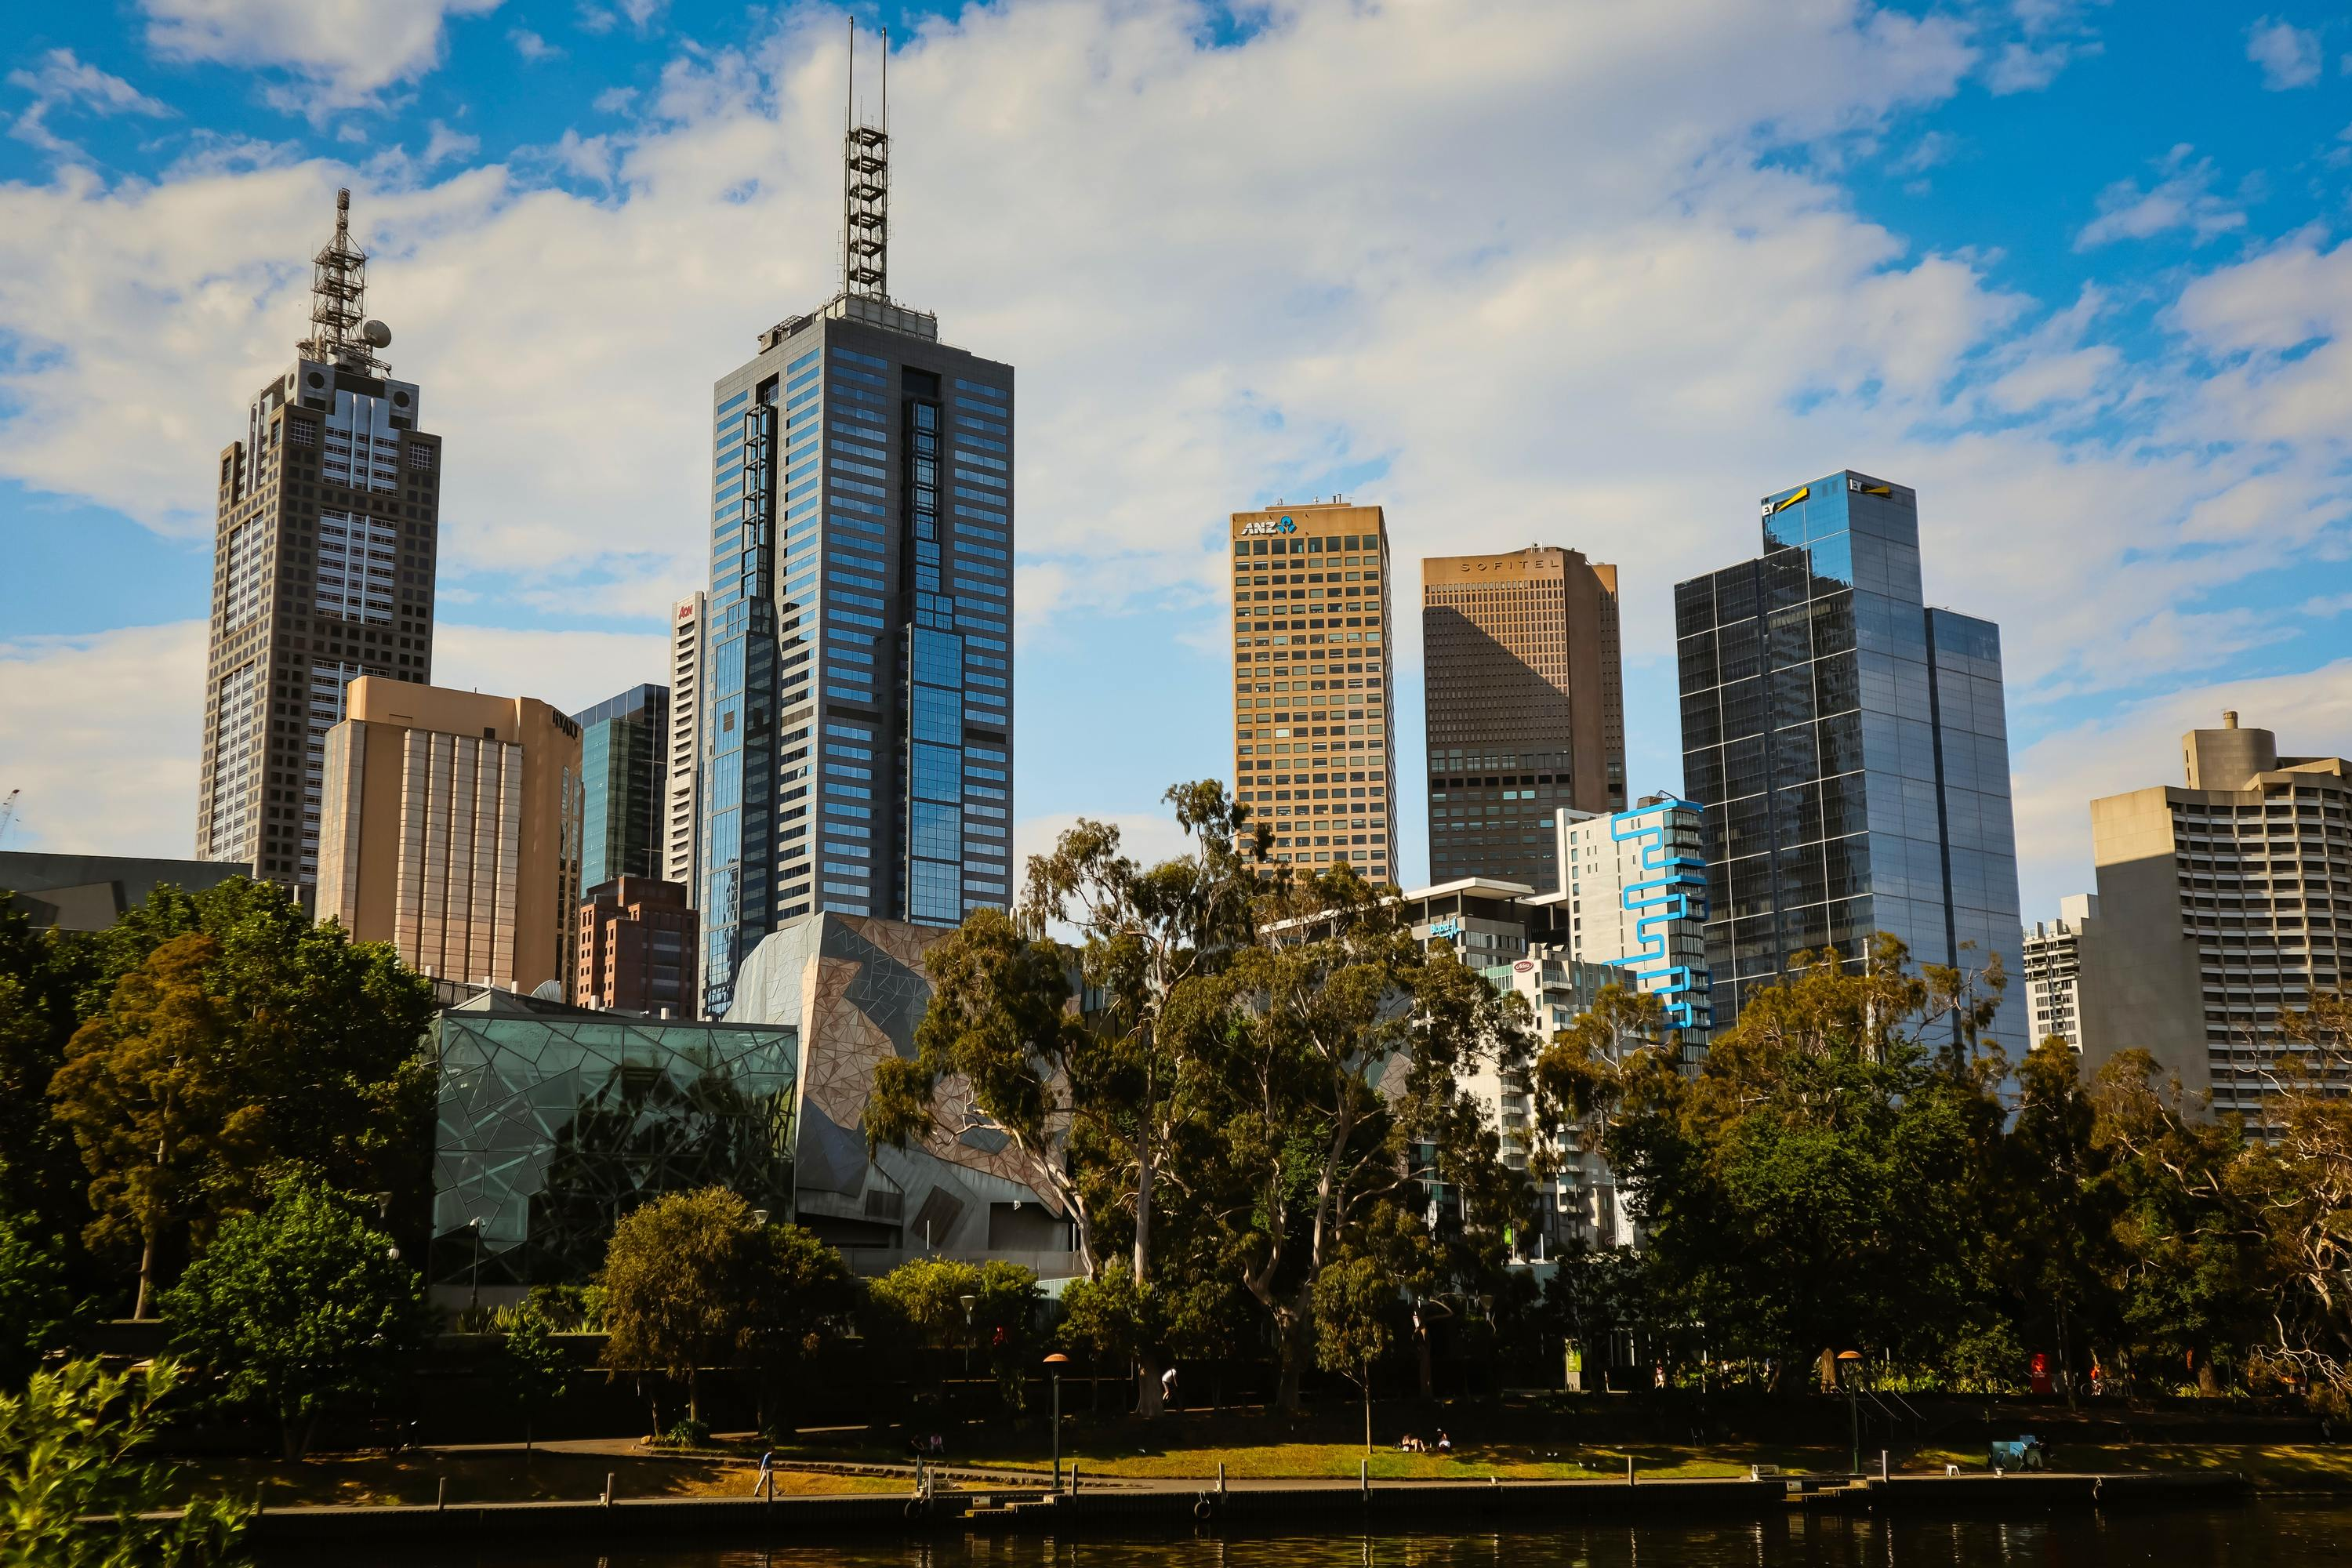 Melbourne experienced a magnitude 6 earthquake this morning